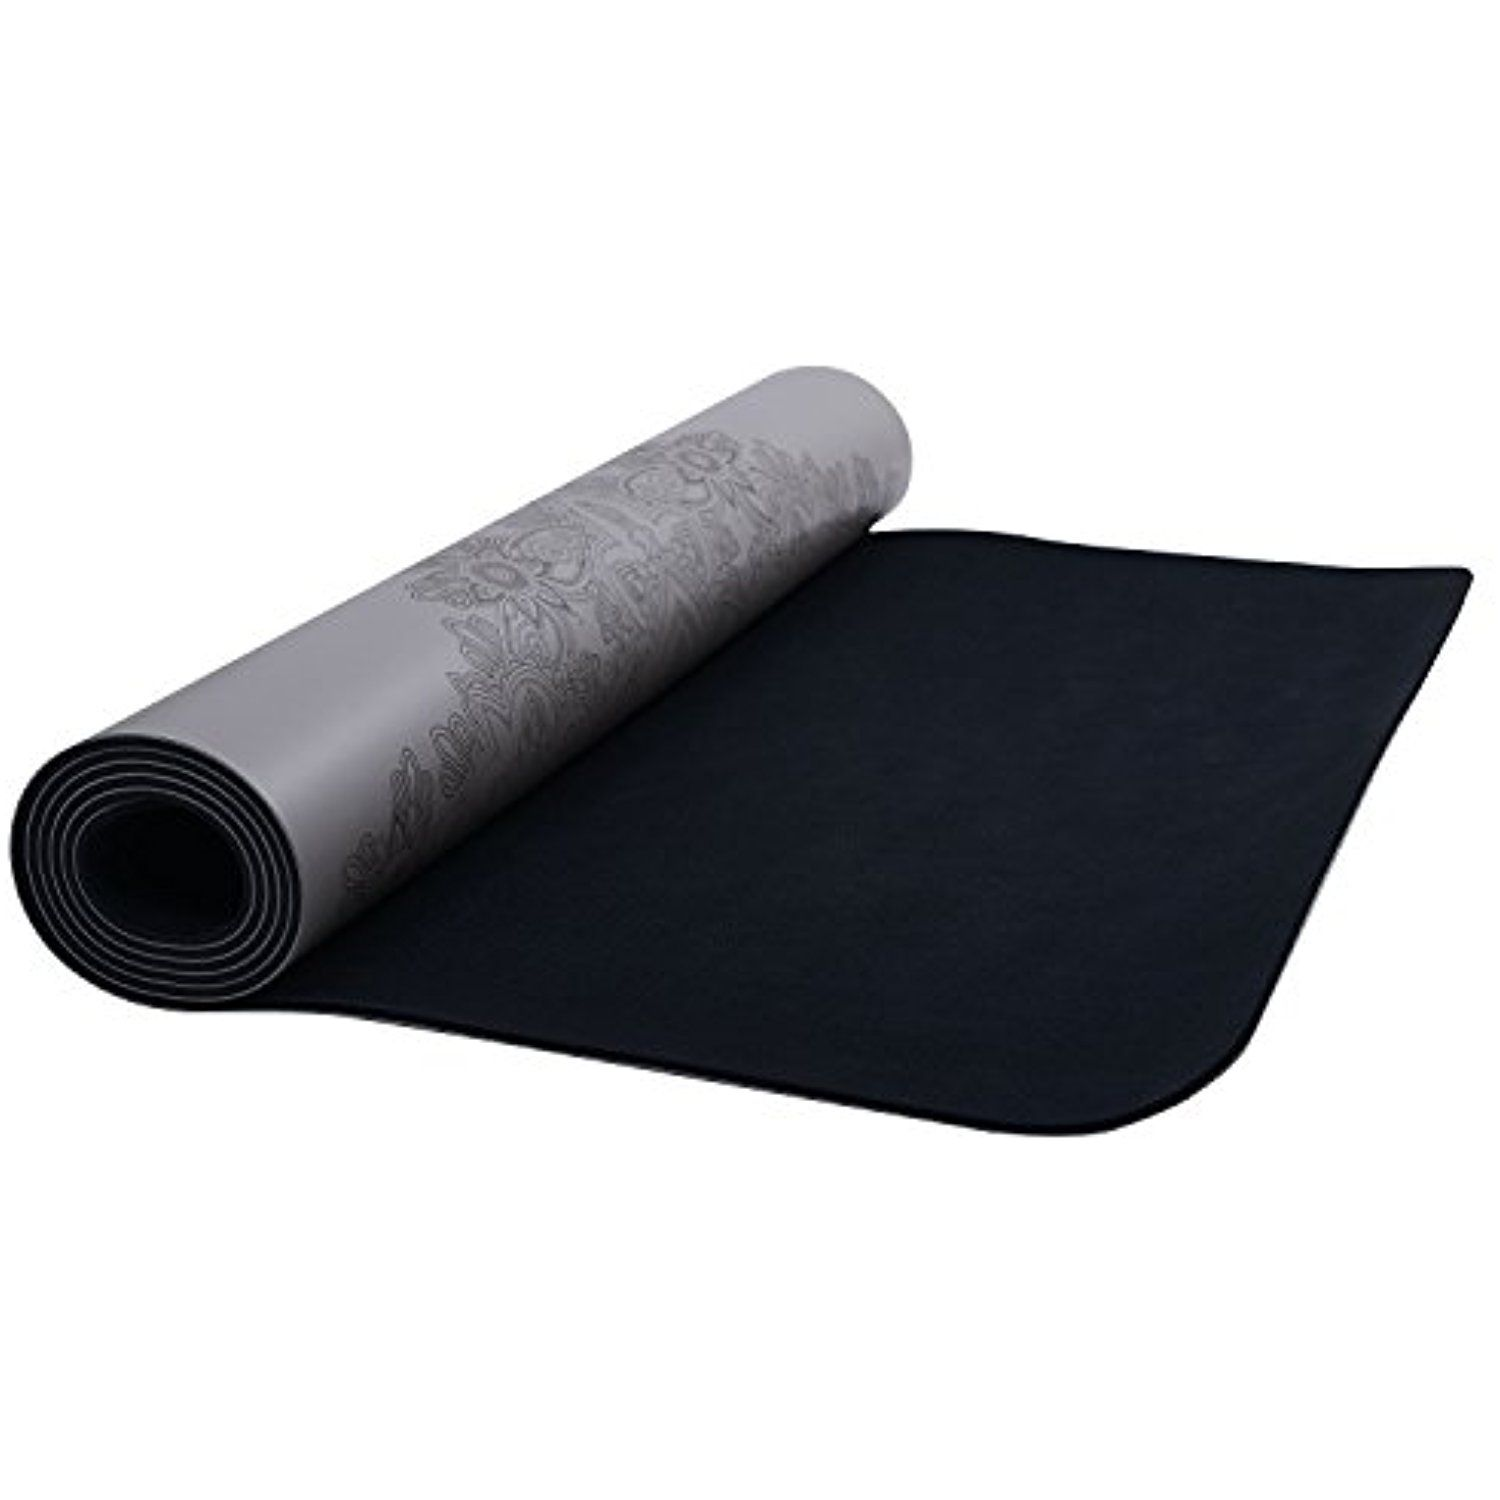 Yoga Mat 4 5mm Thick Made From Eco And Body Friendly Natural Rubber Sweat Grip Non Slip Perfect For Hot Yoga Pilates And Exerci Hot Yoga Exercise Yoga Mat Bag